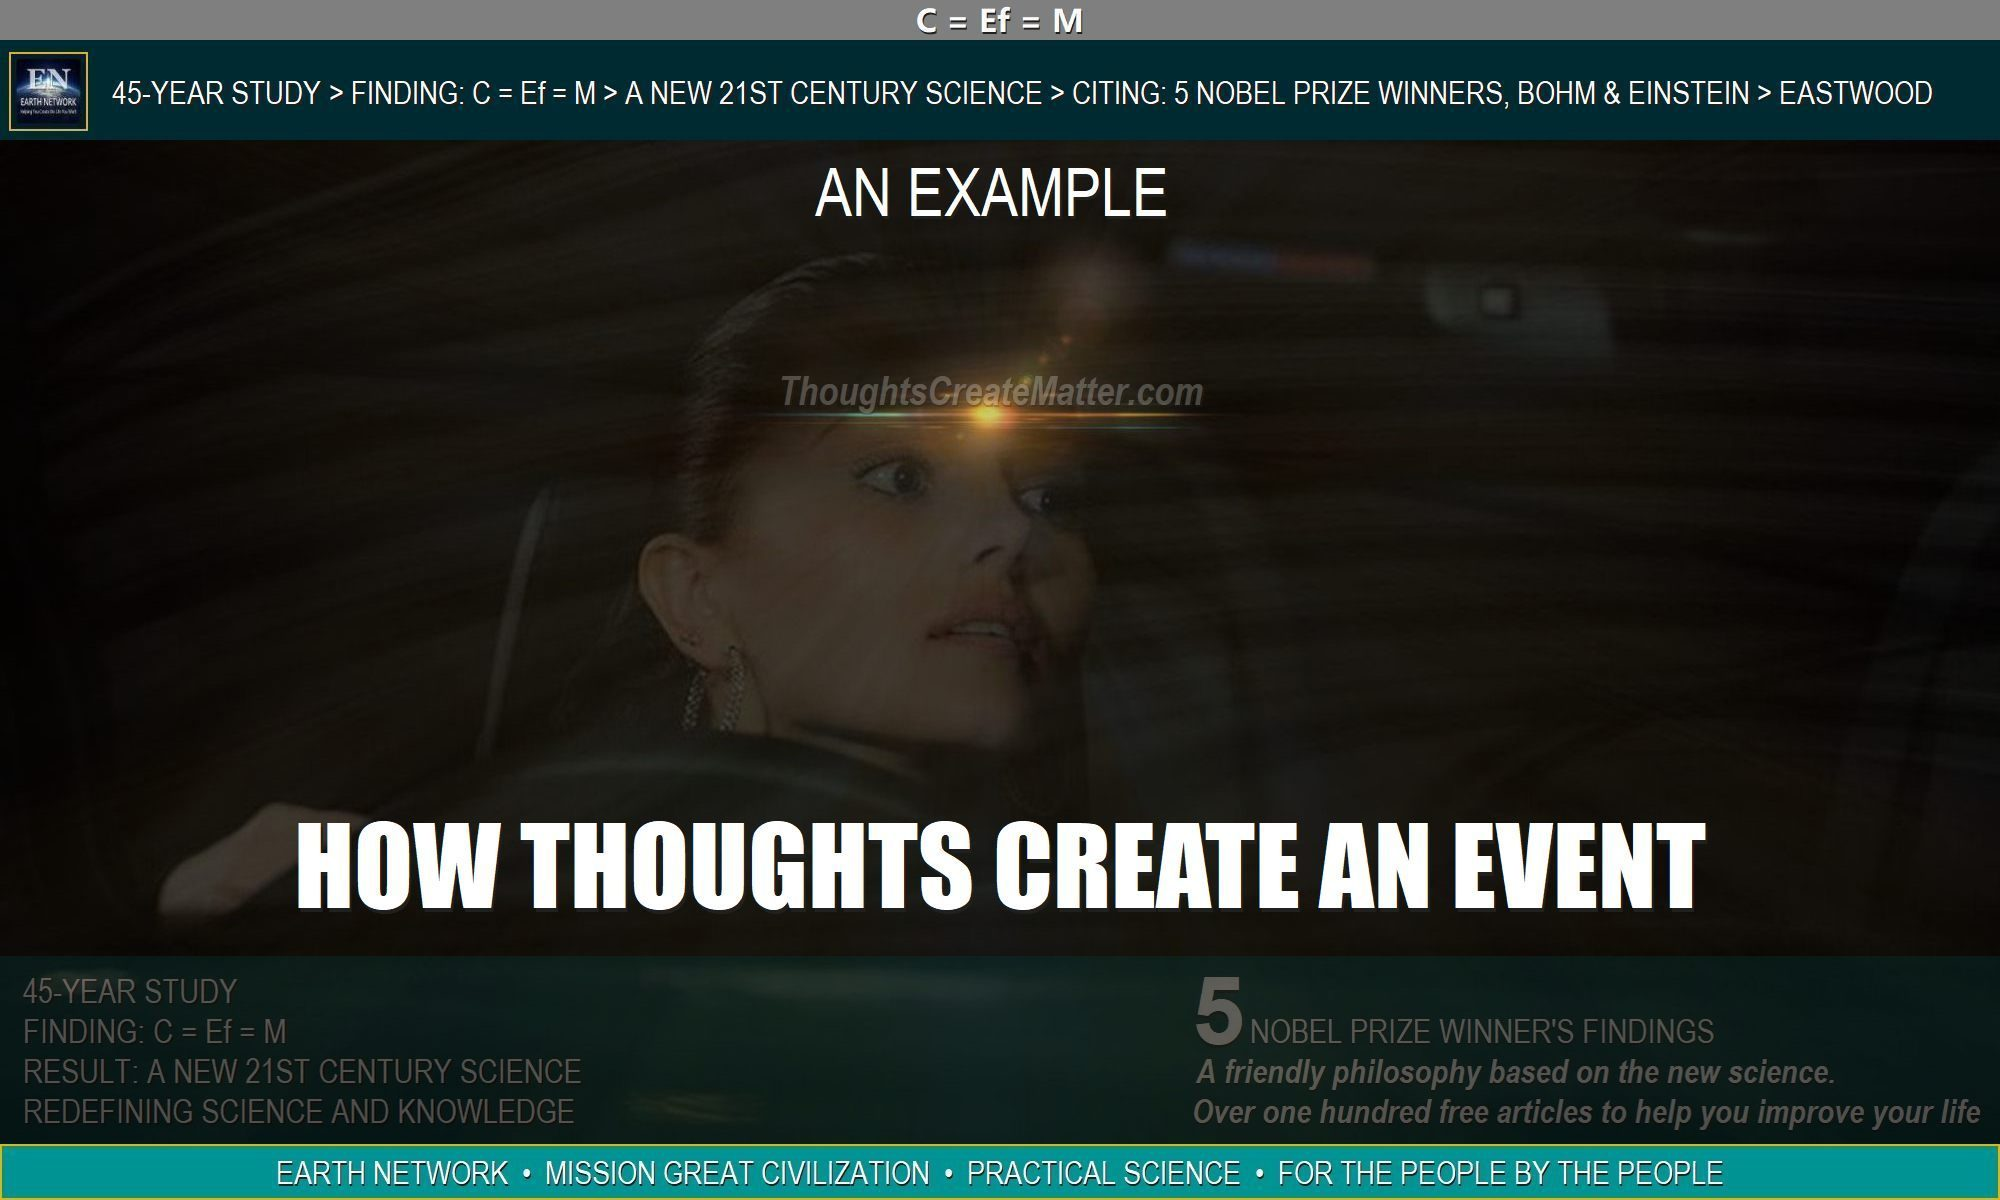 Woman almost crashing car as an example of how your thoughts create an event. And how thoughts create matter.